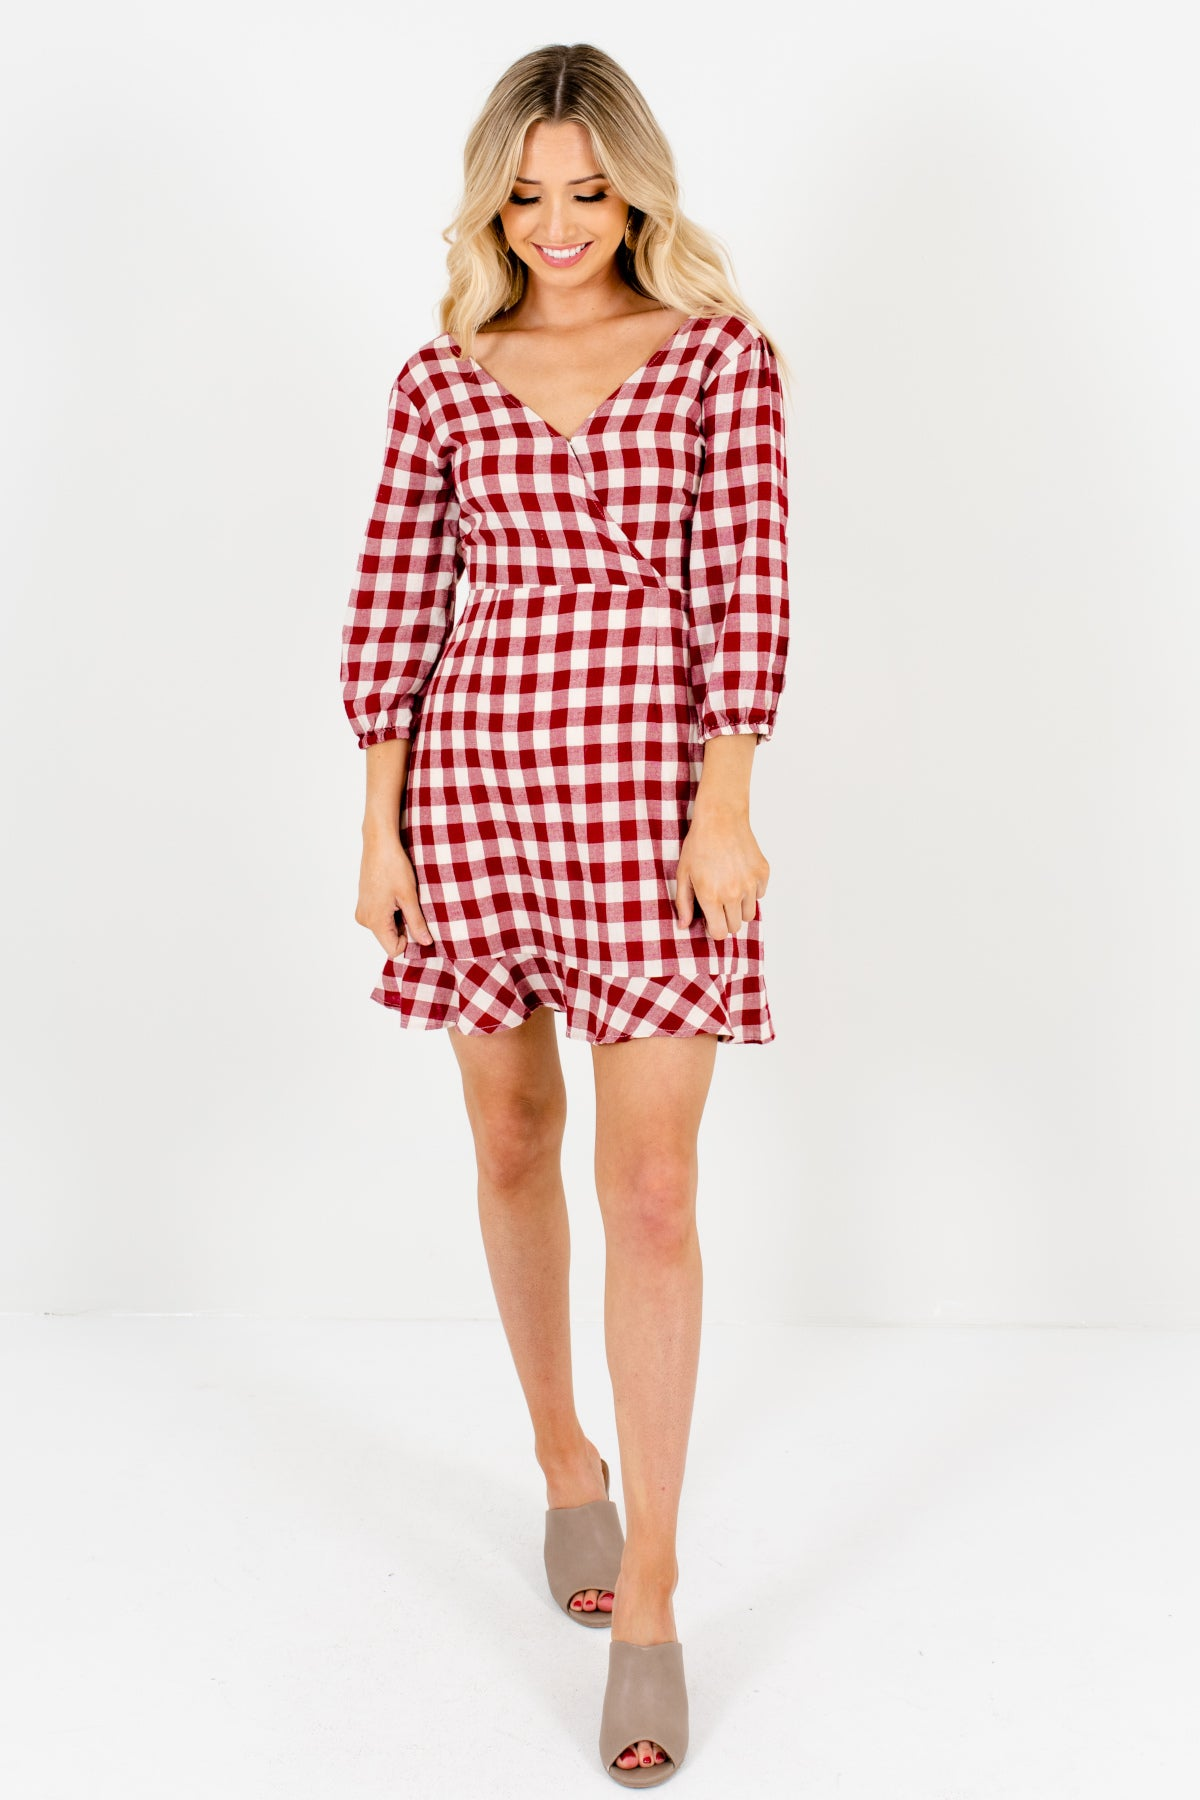 5842ed4ae585b Double Date Red Gingham Mini Dress | Vintage-Inspired Boutitque